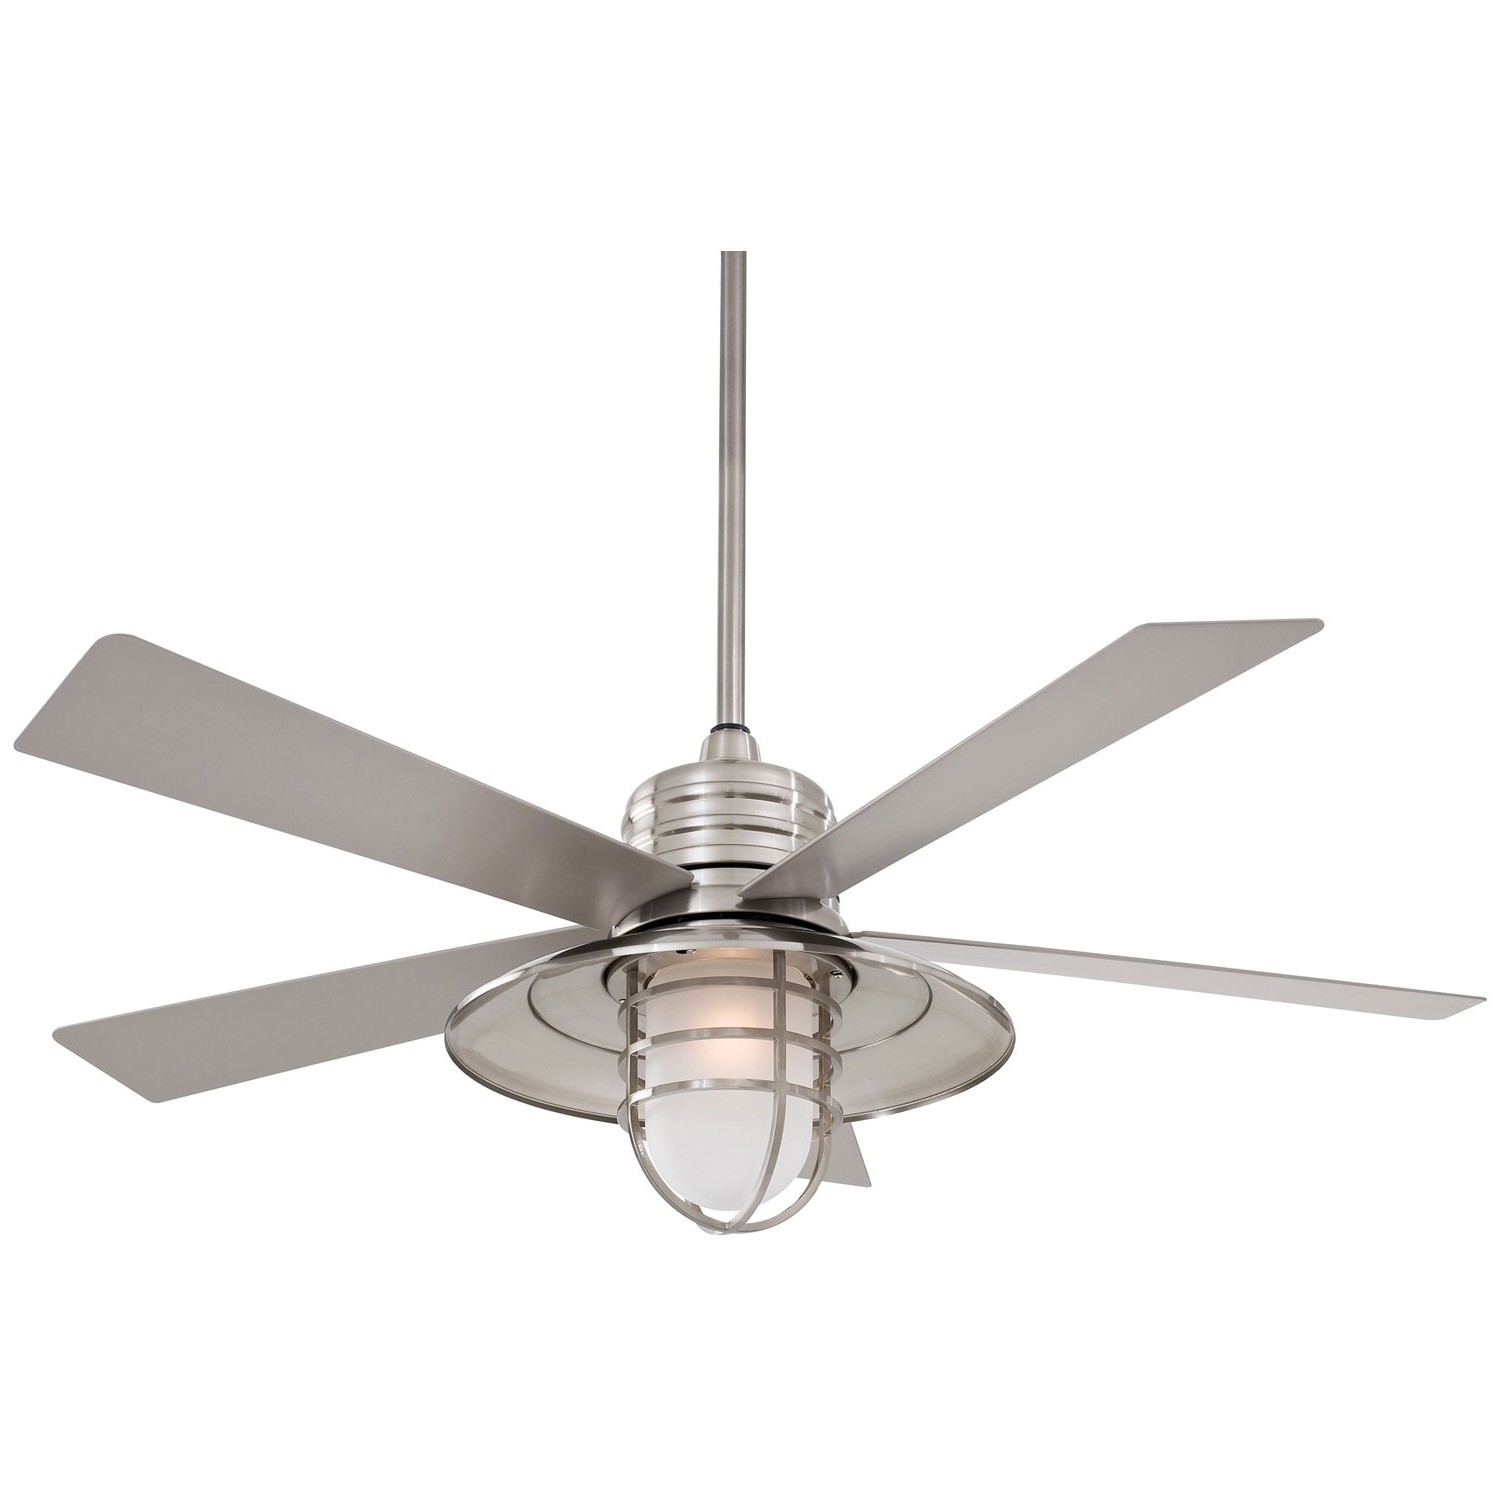 Fashionable Minka Aire Rainman Brushed Nickel 54 Inch Blade Indoor/outdoor With Outdoor Ceiling Fans For Wet Locations (View 9 of 20)